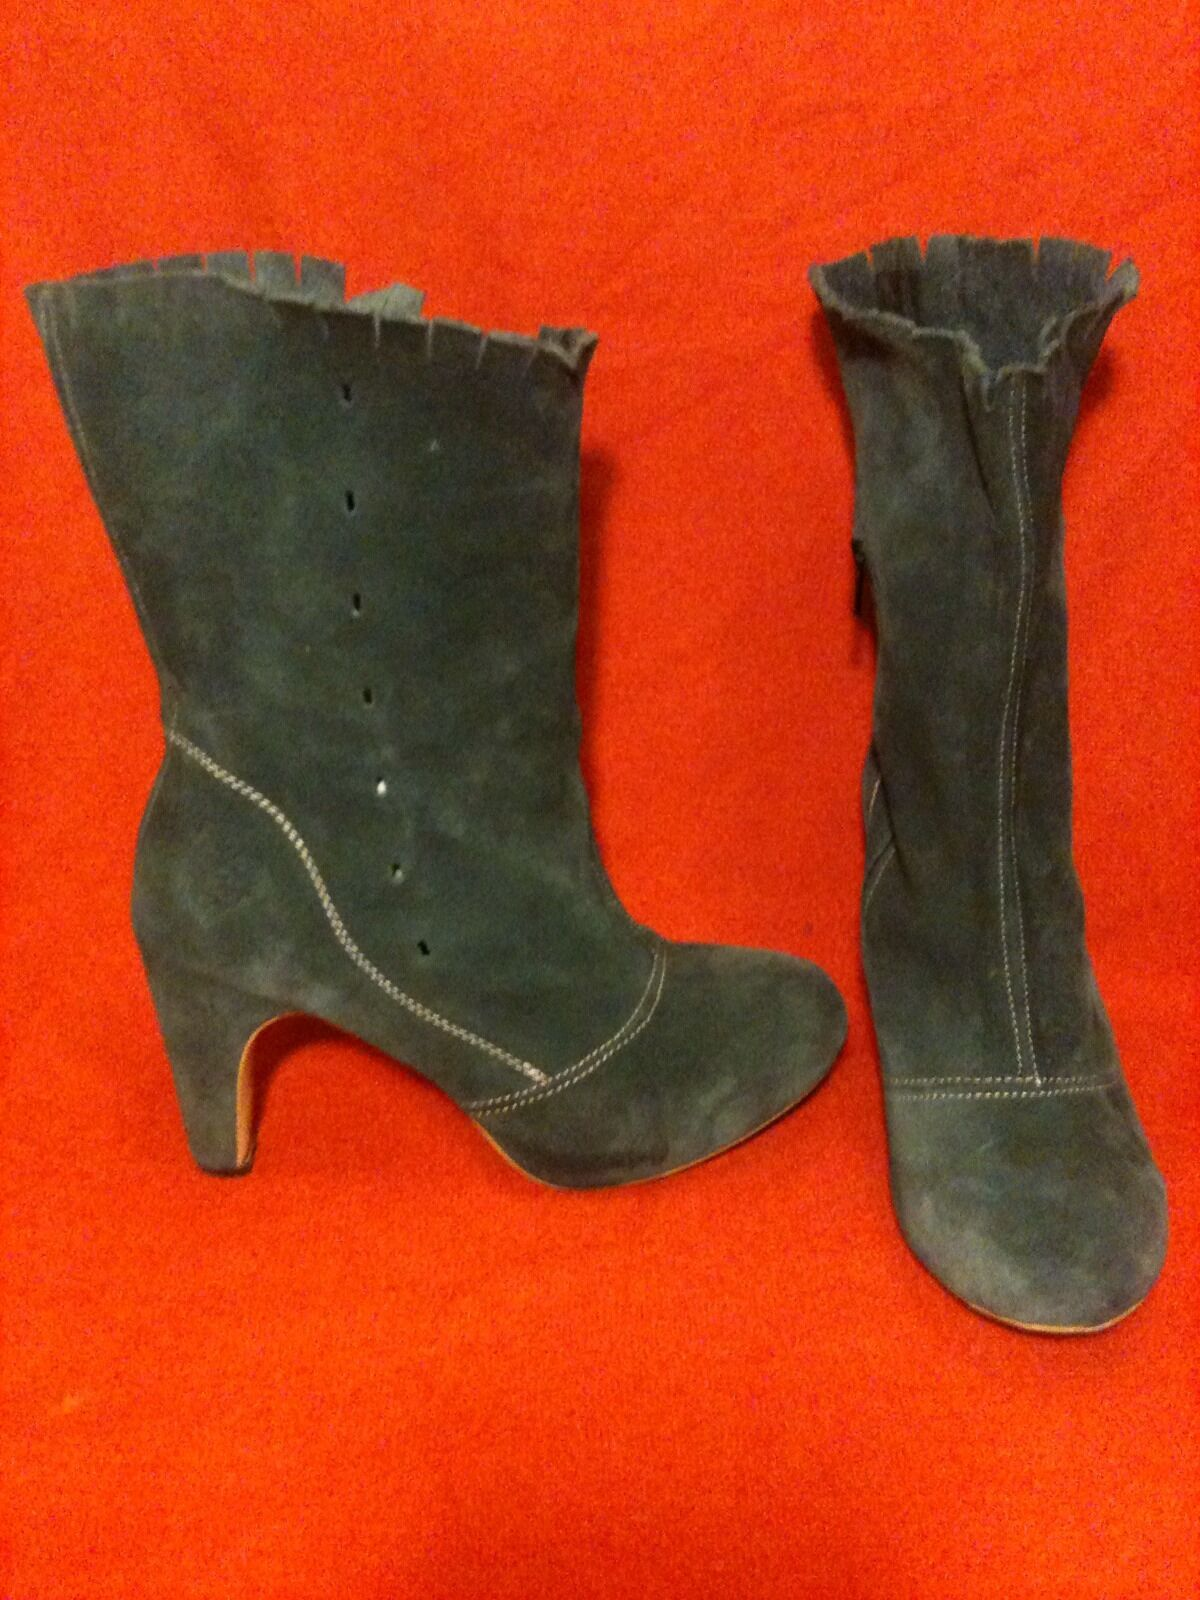 Teal Suede Fly London Mid-Calf Boots 9.5-10 41